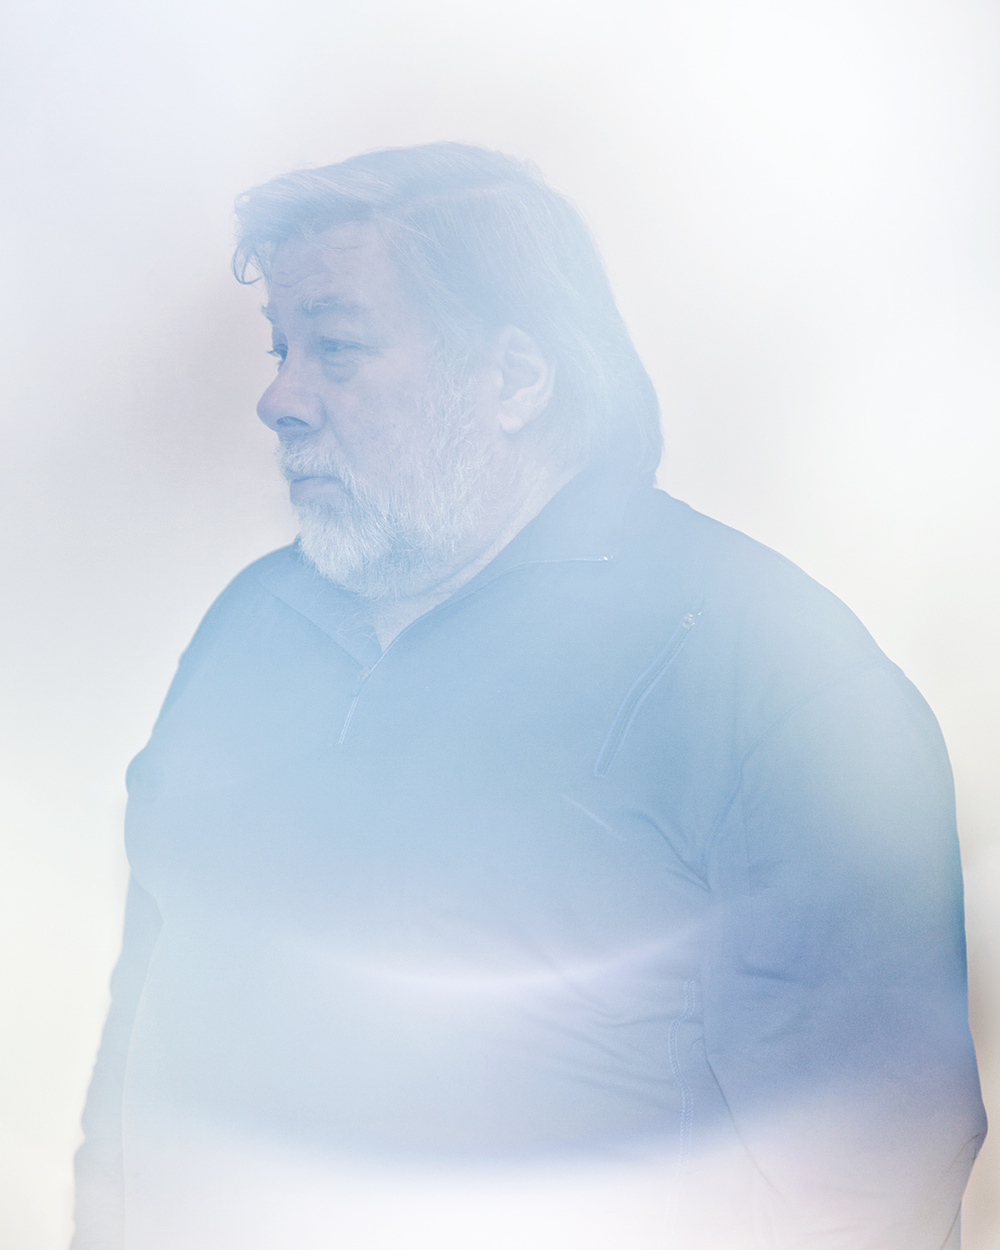 Steve Wozniak for WIRED.